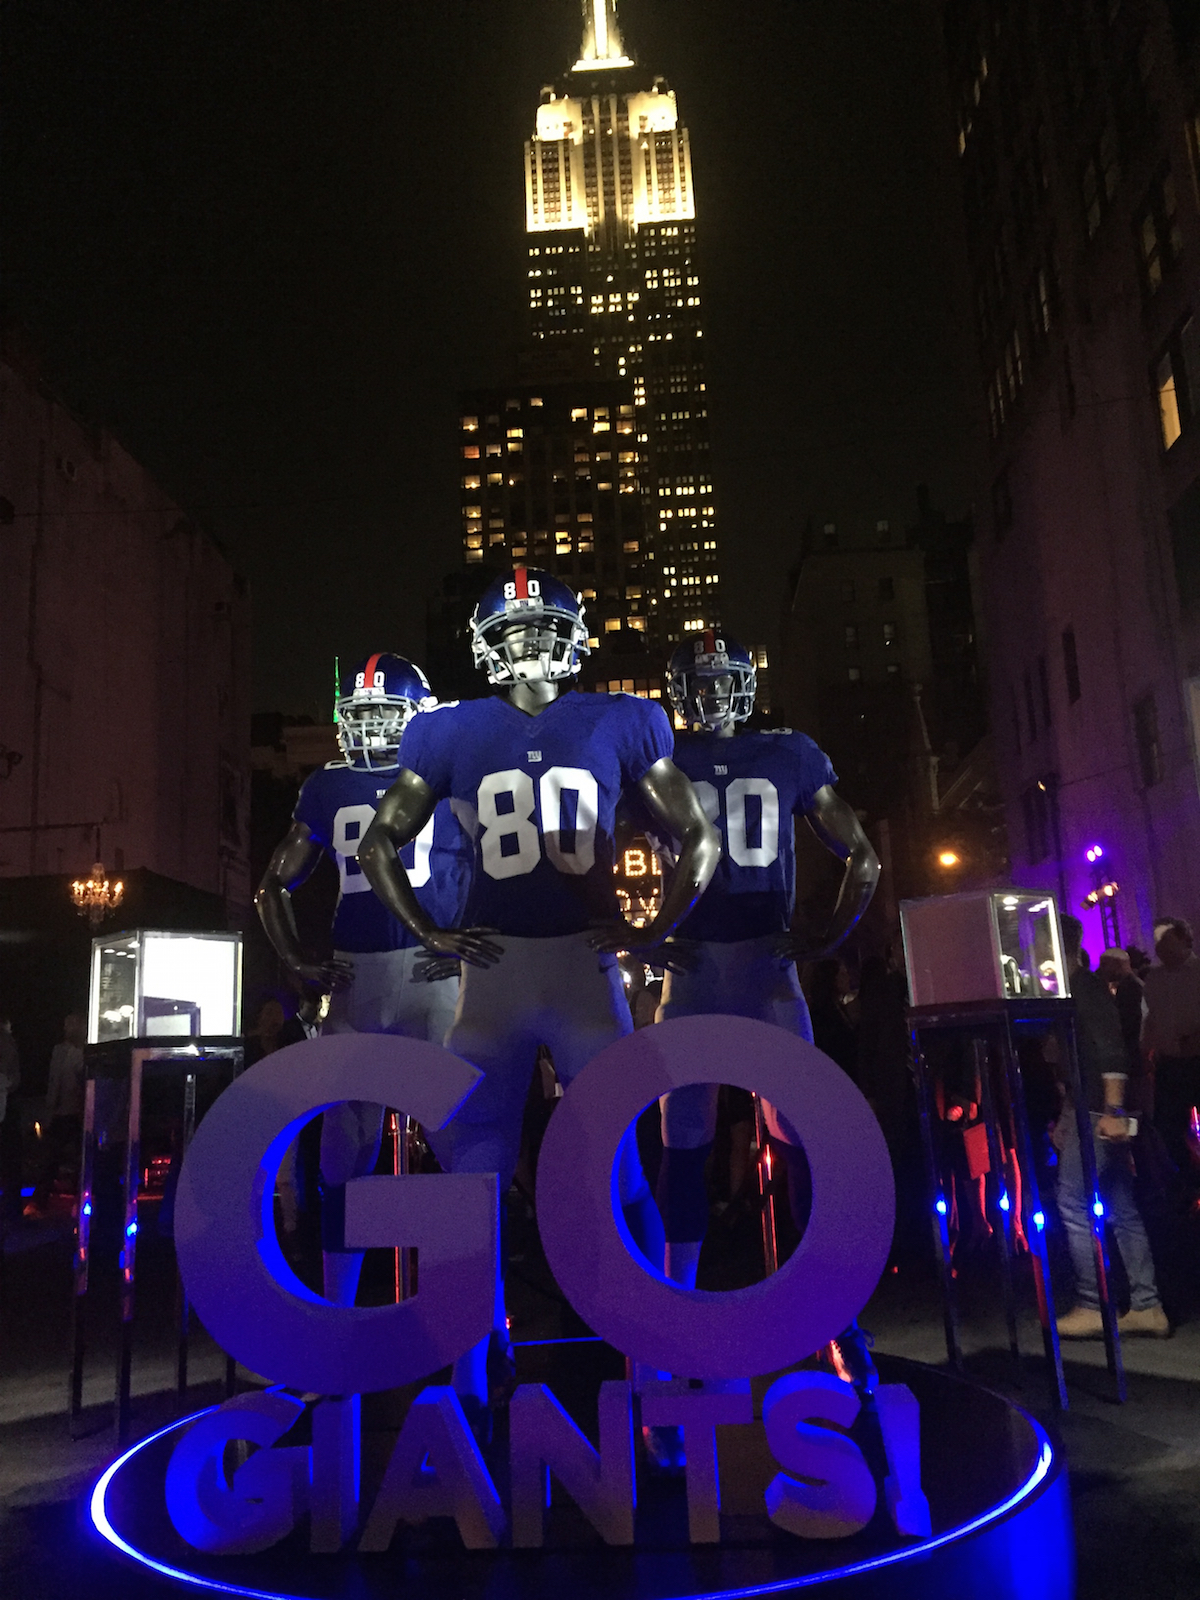 life-size-mannequins-of-victor-cruz-football-attire-set-teh-stage